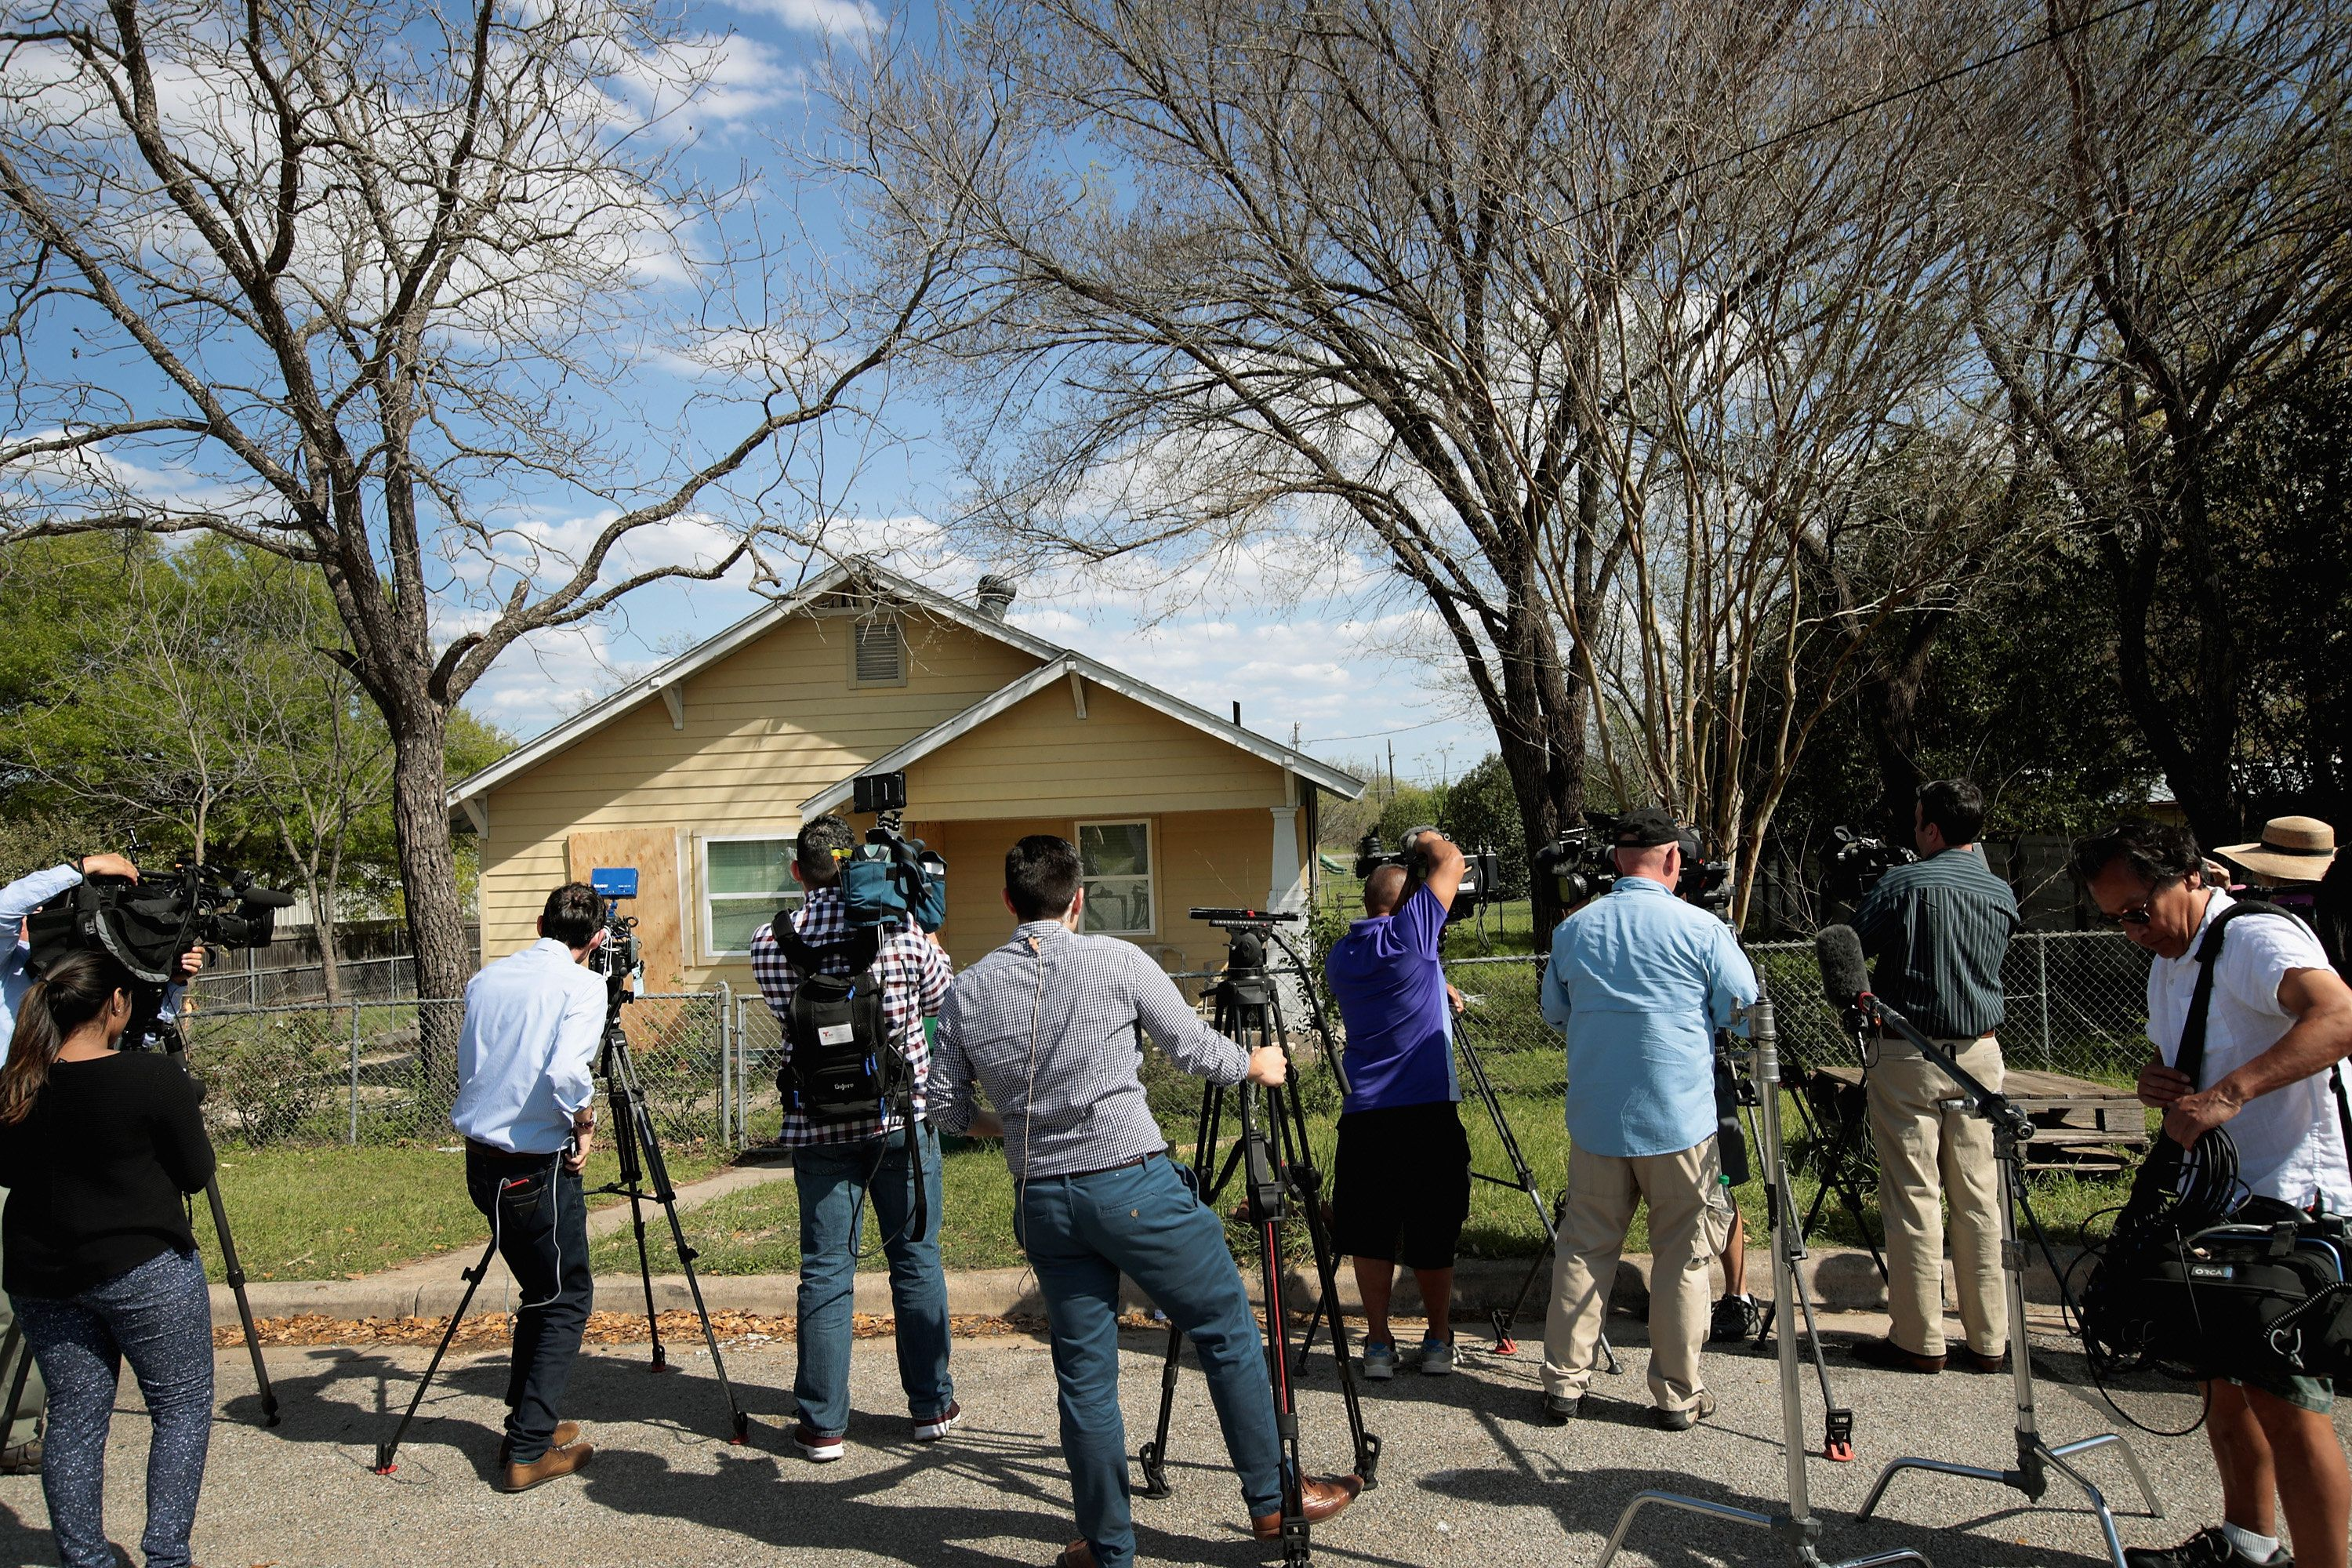 Television news crews set up outside the home of Mark Anthony Conditt following the police investigation at the property last